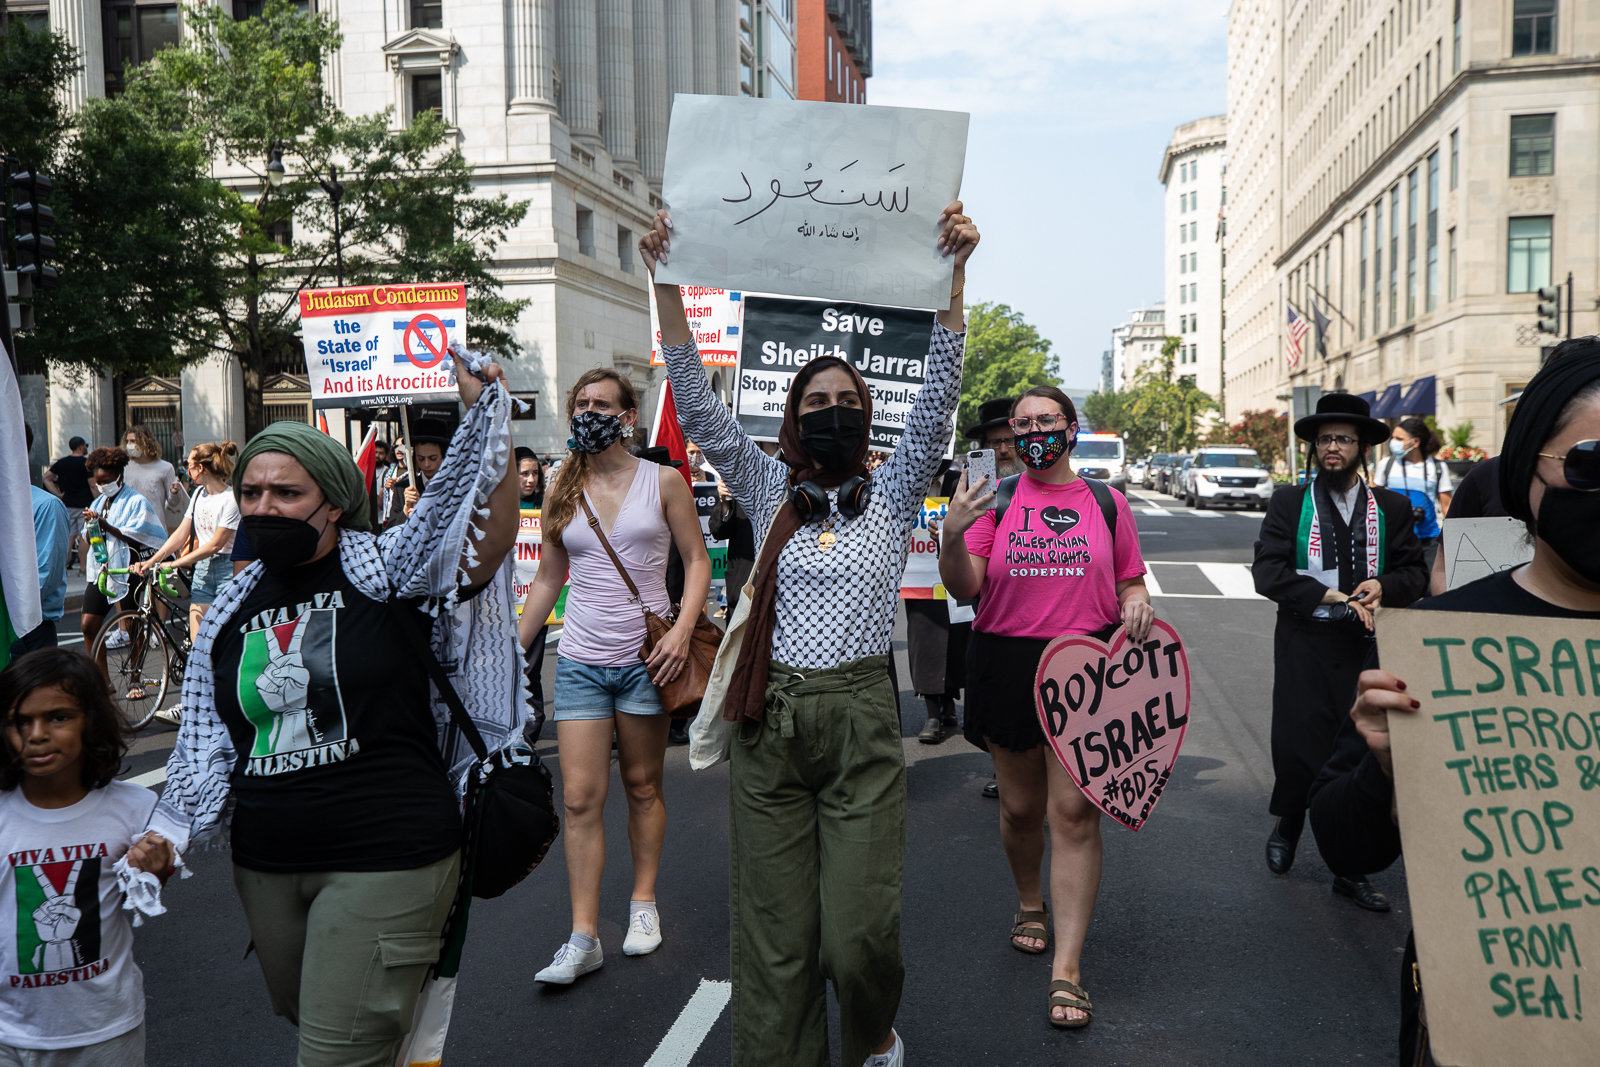 Demonstrators marched in protest of President Joe Biden's meeting with Israeli Prime Minister Naftali Bennett in Washington, D.C. on August 26, 2021. (Kaylee Greenlee - Daily Caller News Foundation)